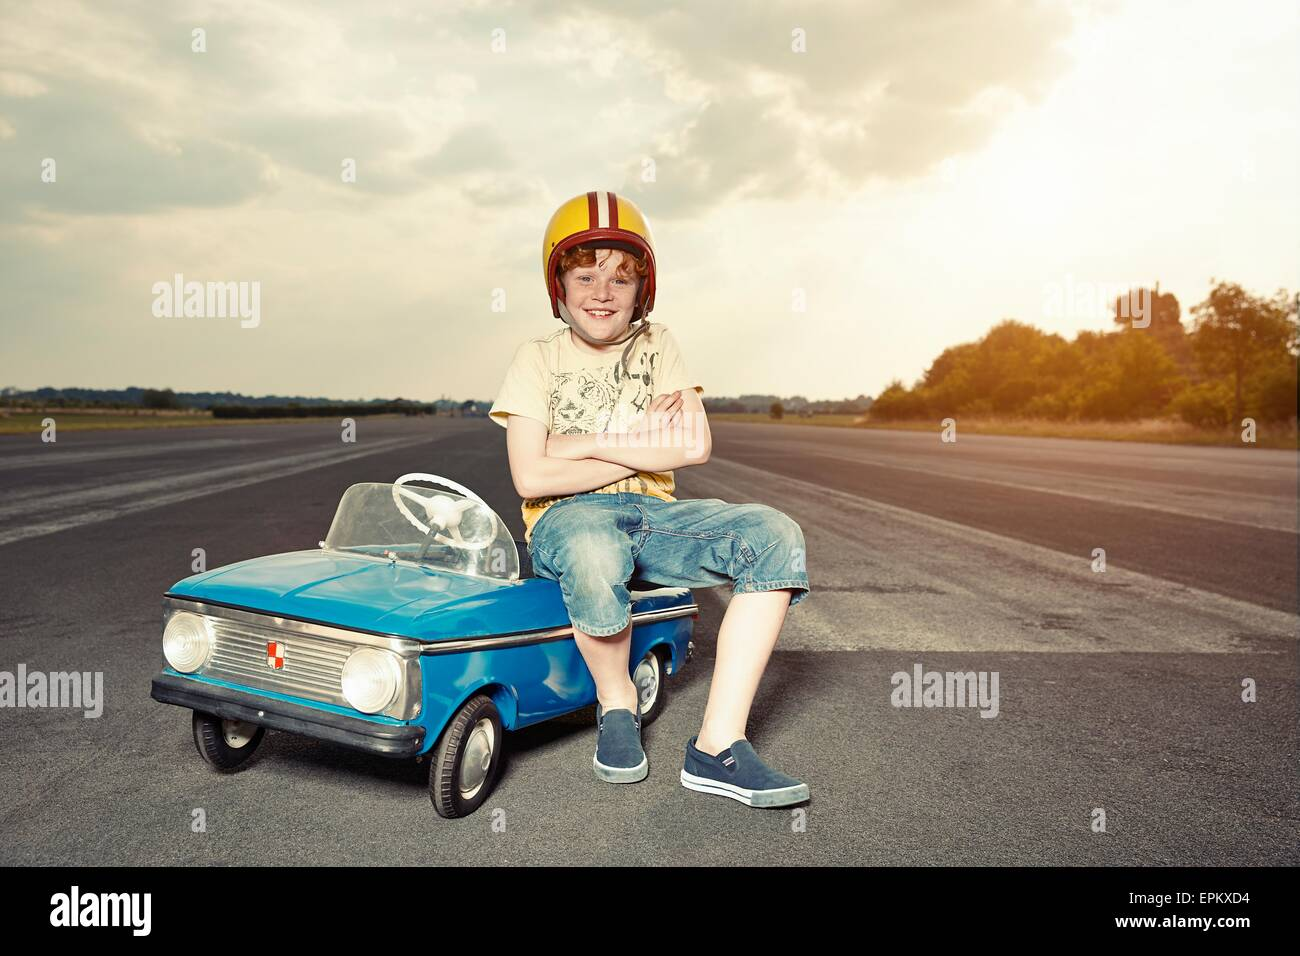 Smiling boy with pedal car on race track - Stock Image